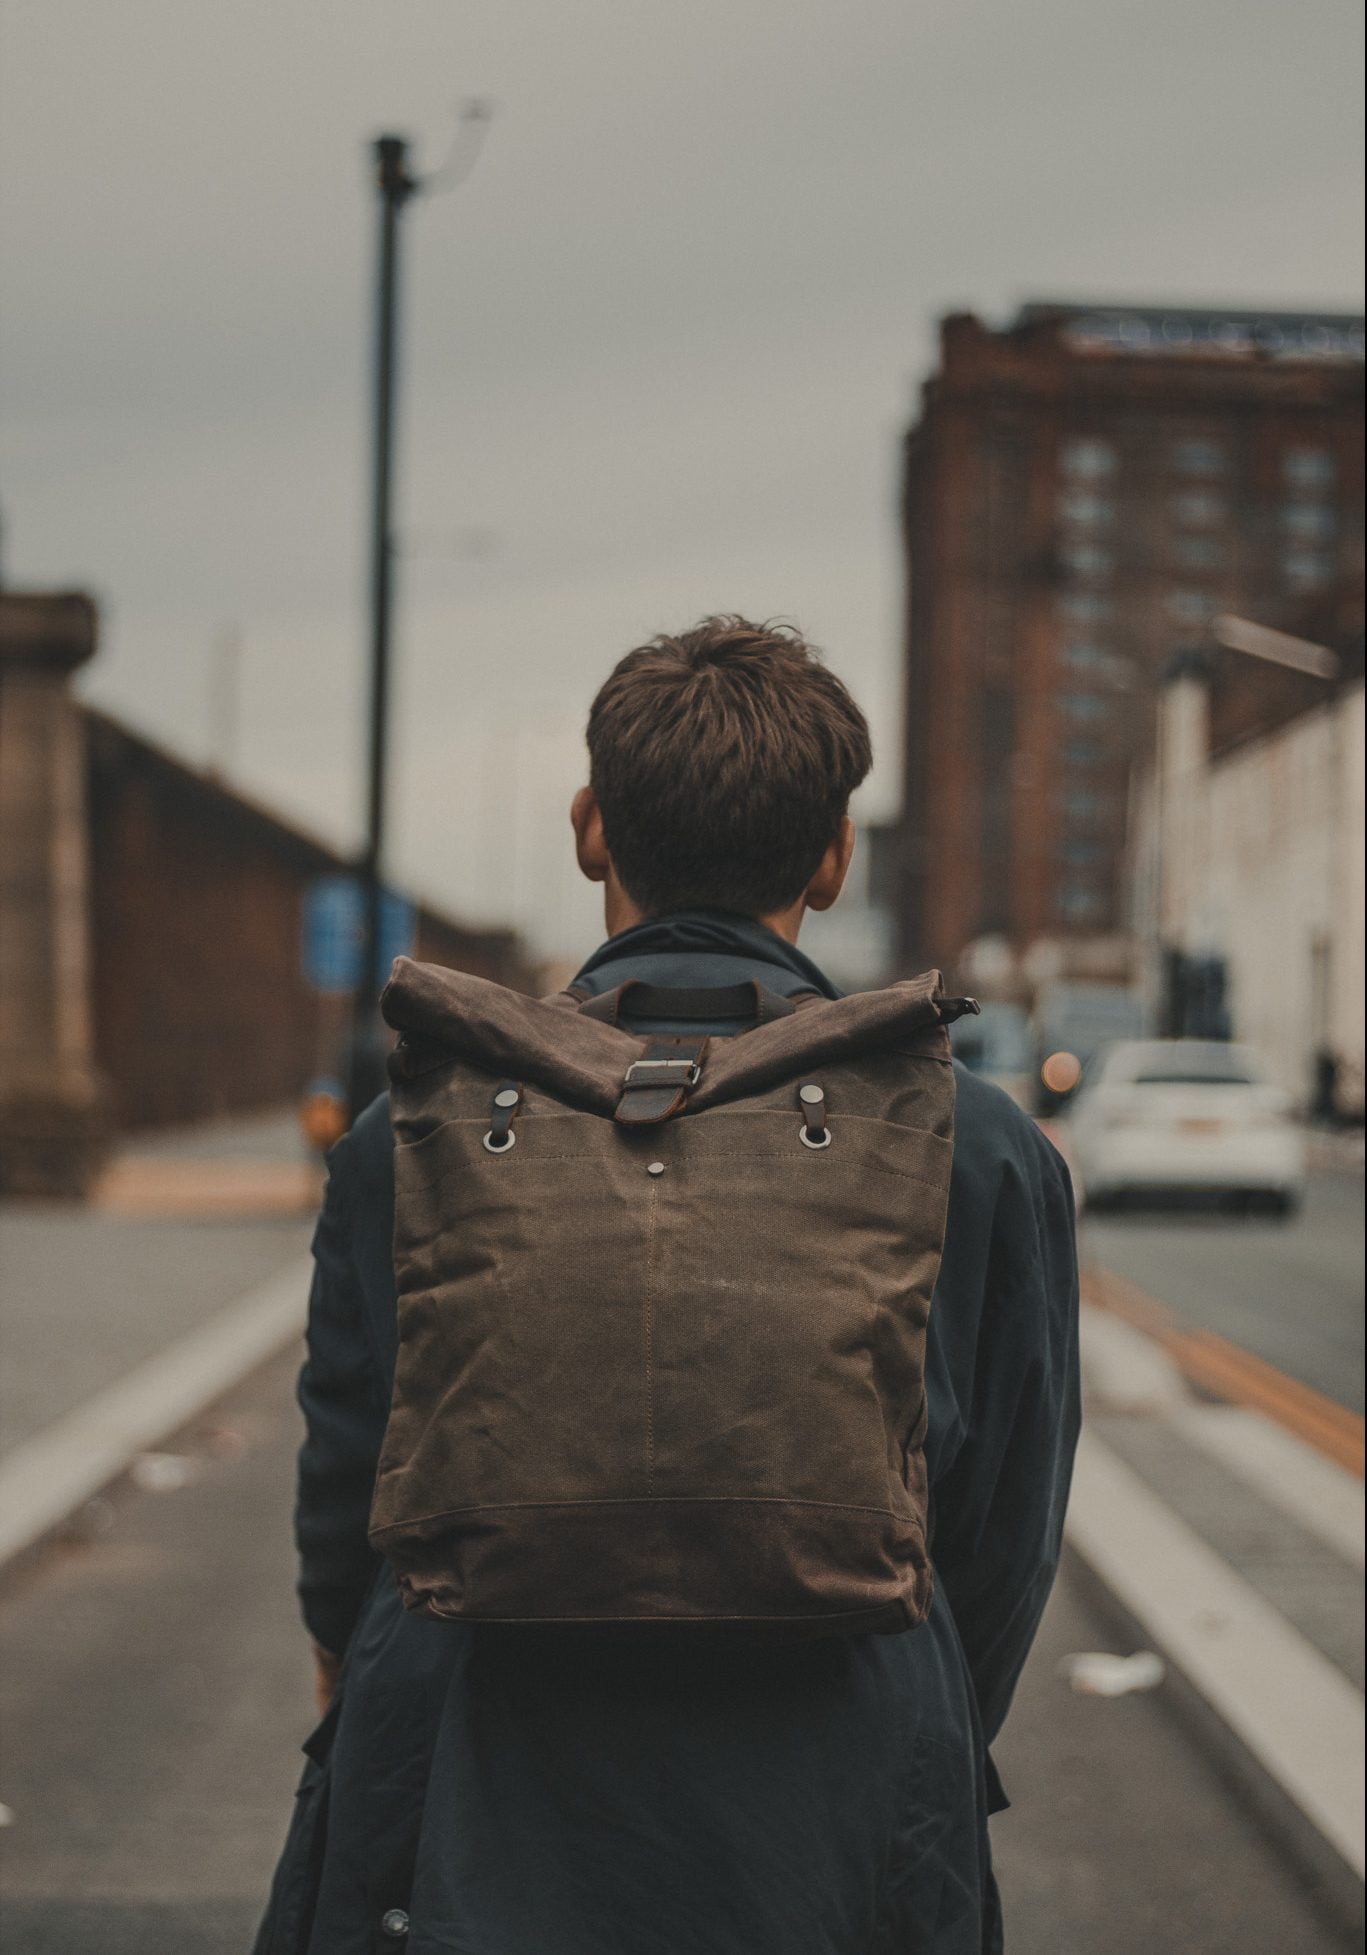 Waxed Cotton Canvas and Leather Backpack Rucksack - Cycling Style City Commuter Holdall - The Farnborough in Moss by Oldfield - Bicycle by Ten Street Cycles Liverpool